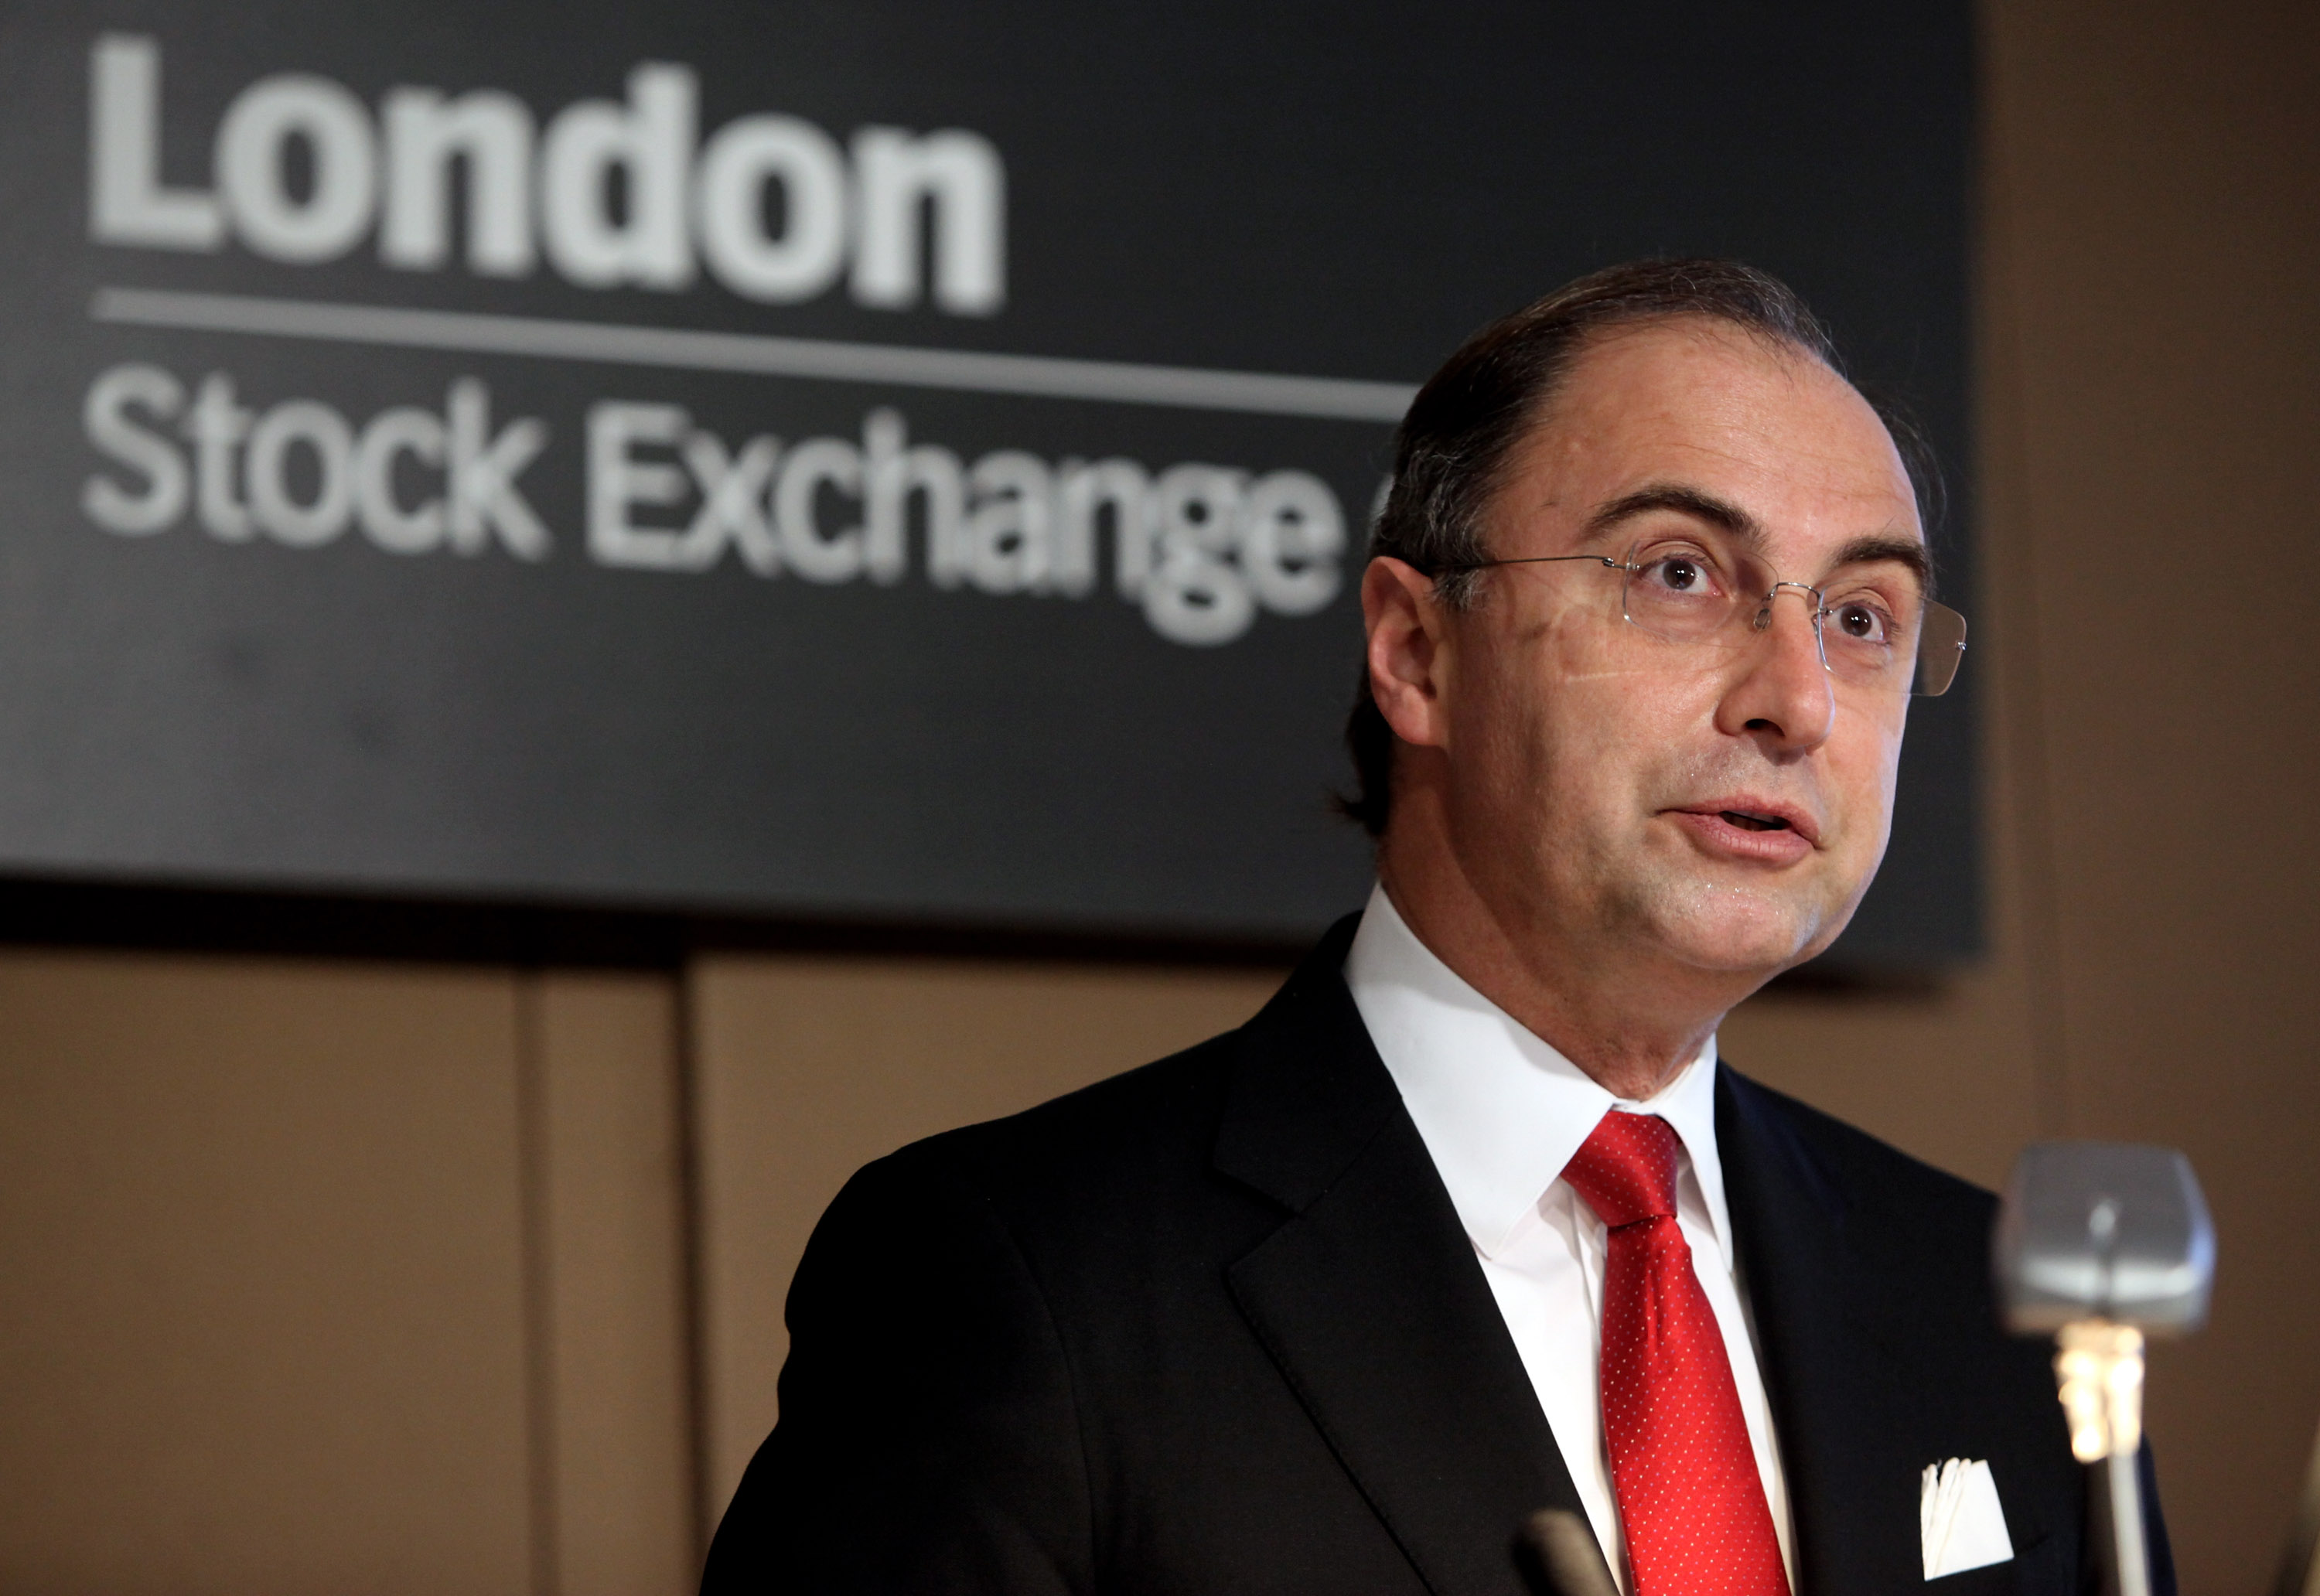 london stock exchange says ceo xavier rolet to depart